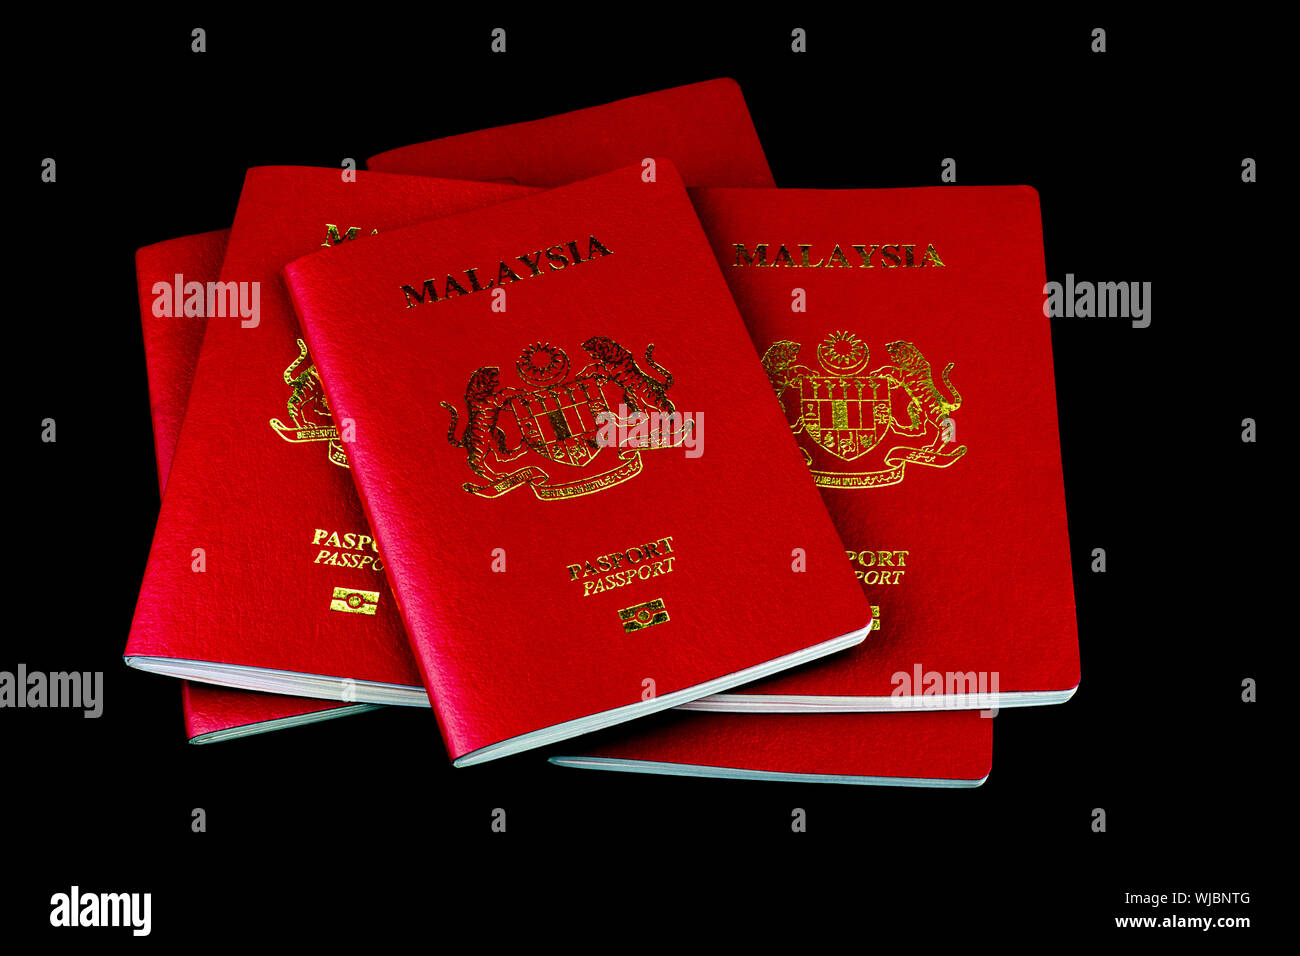 A stack of Malaysian passports isolated on a black background - Stock Photo